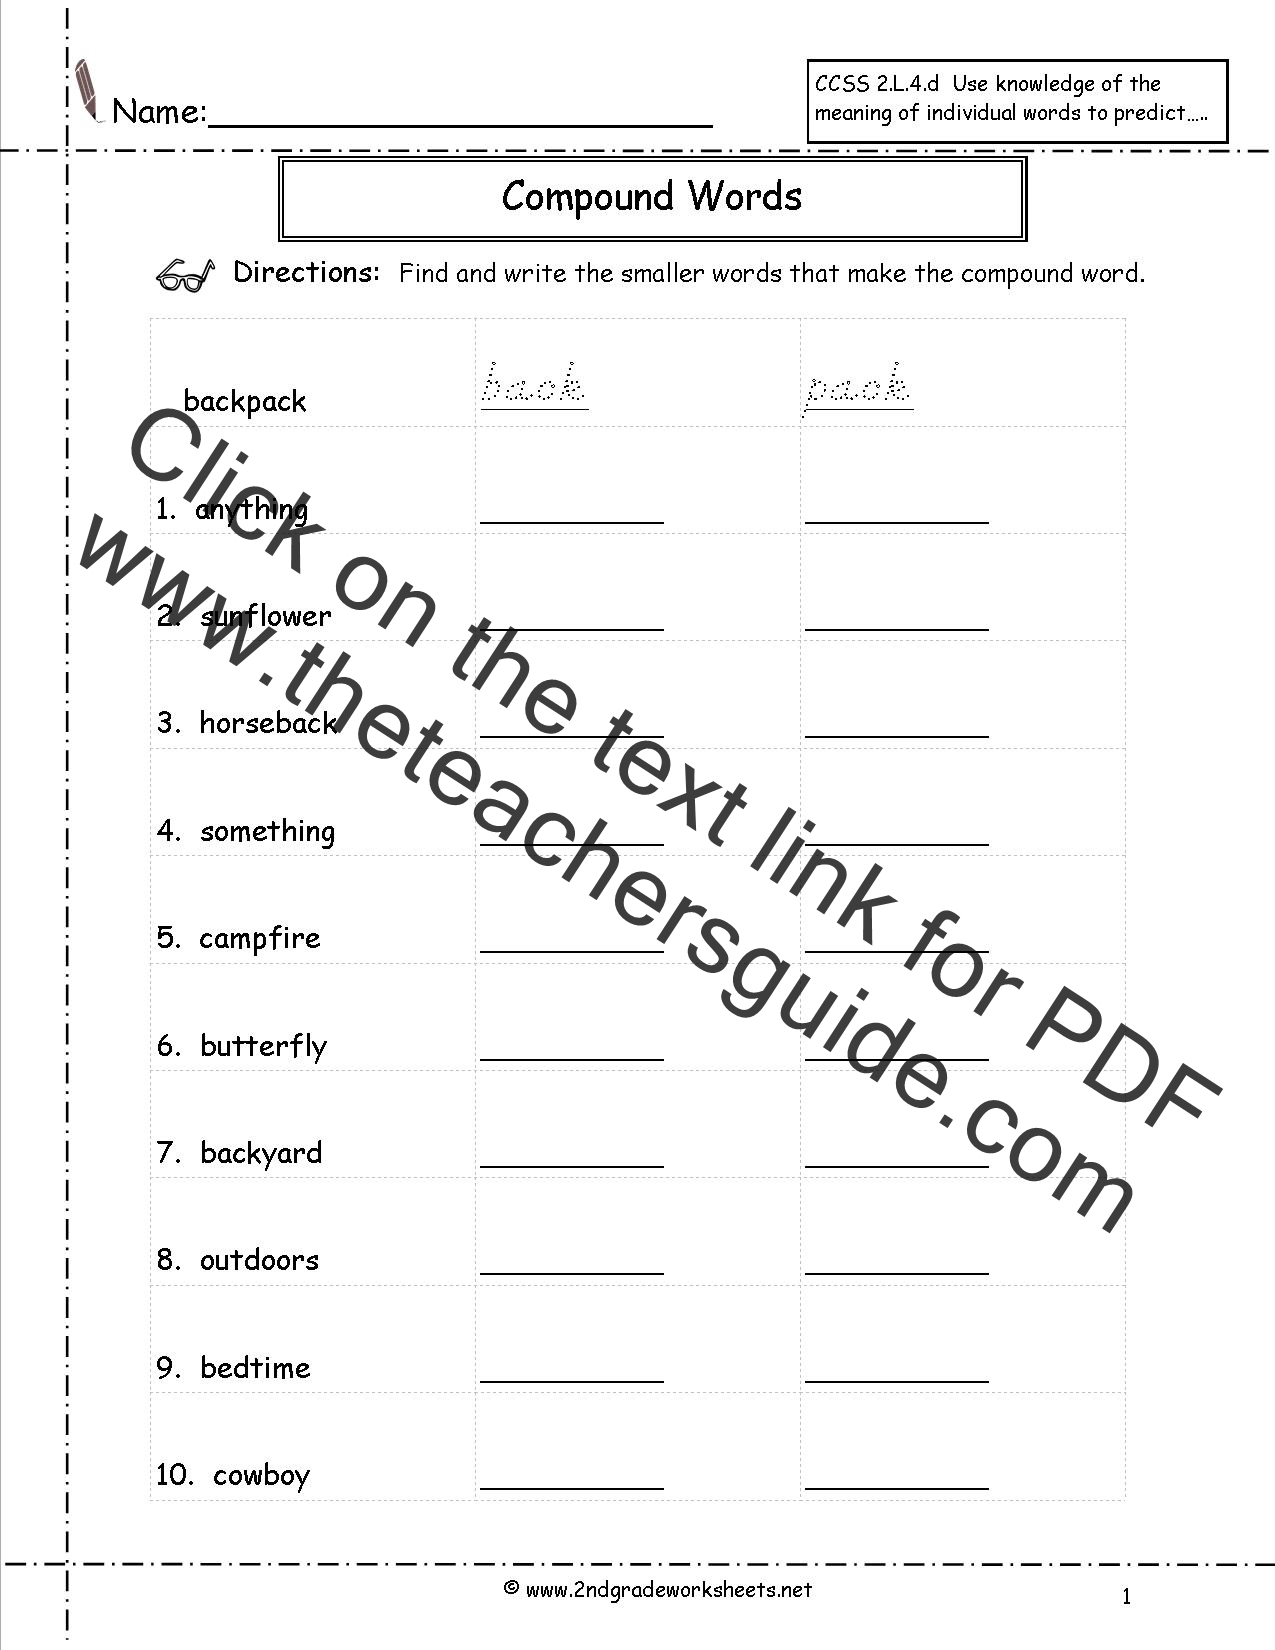 Worksheets Free Printable Second Grade Worksheets free languagegrammar worksheets and printouts compound words worksheets